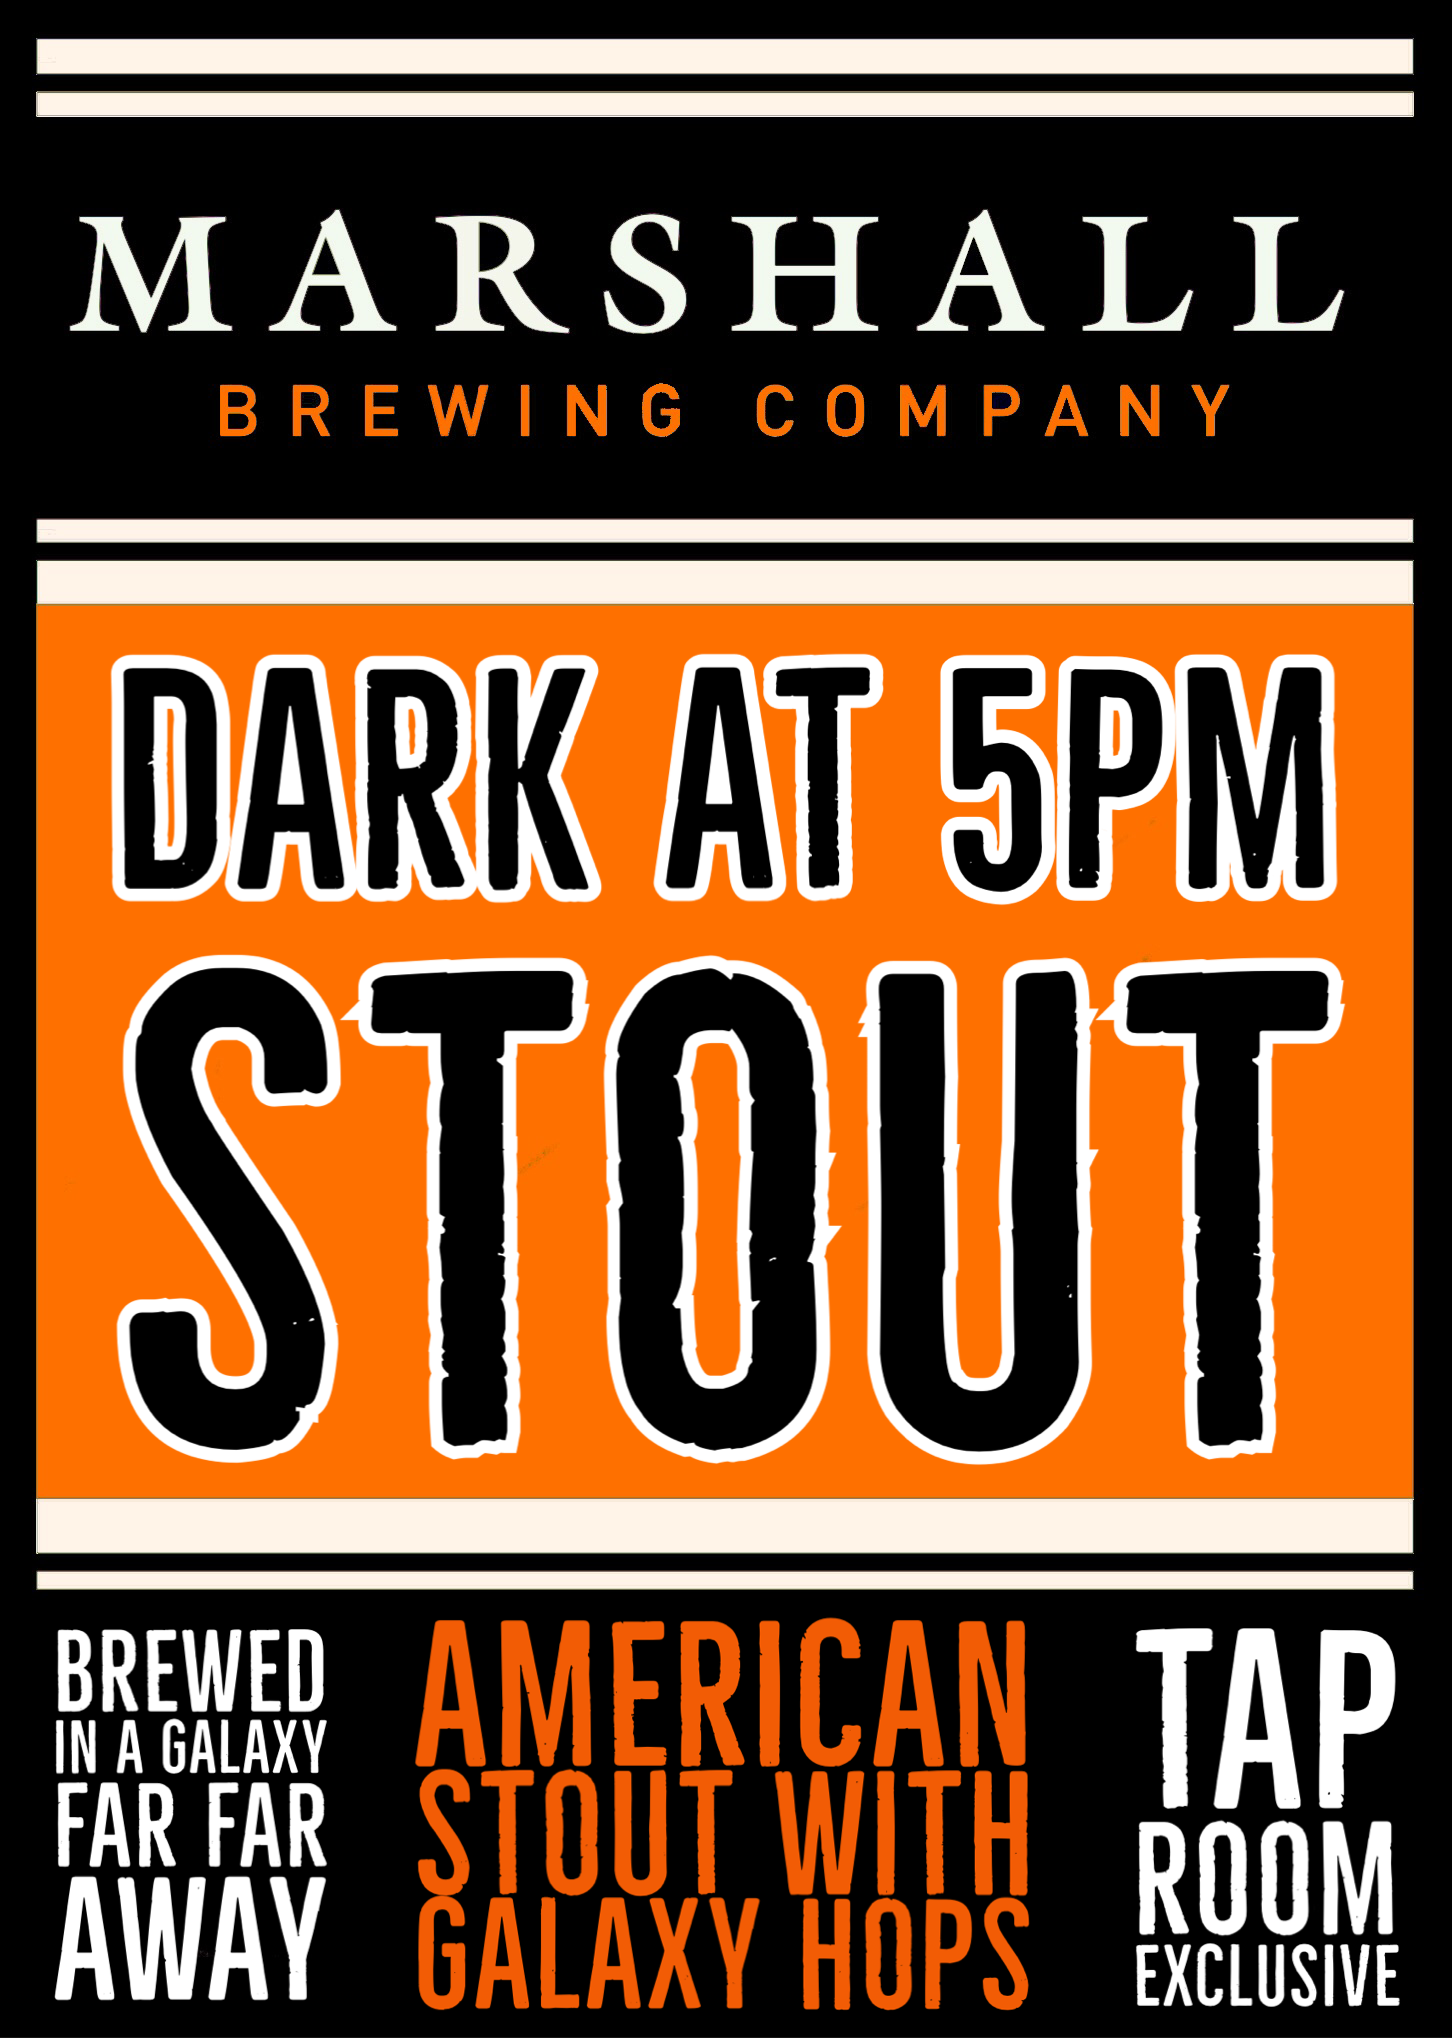 Dark at 5 stout